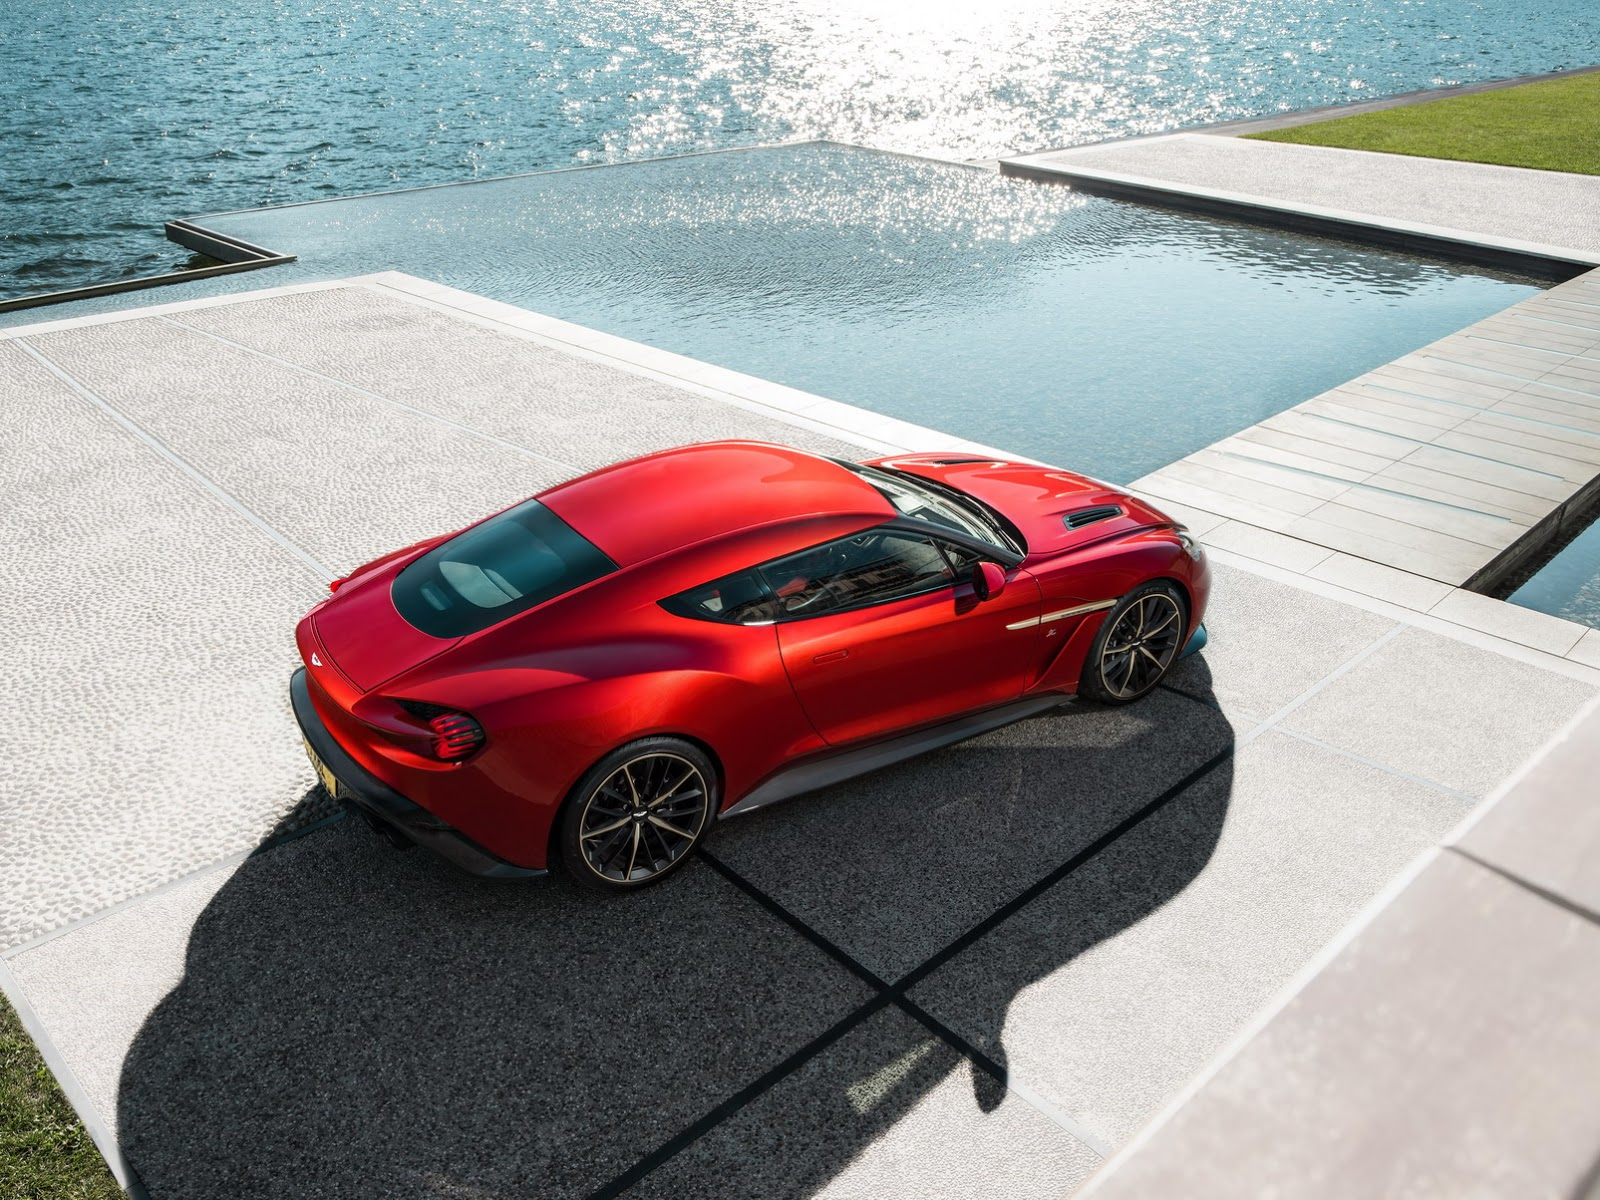 2017 Aston Martin Vanquish Zagato Gets The Green Light For Limited Production Autoevolution